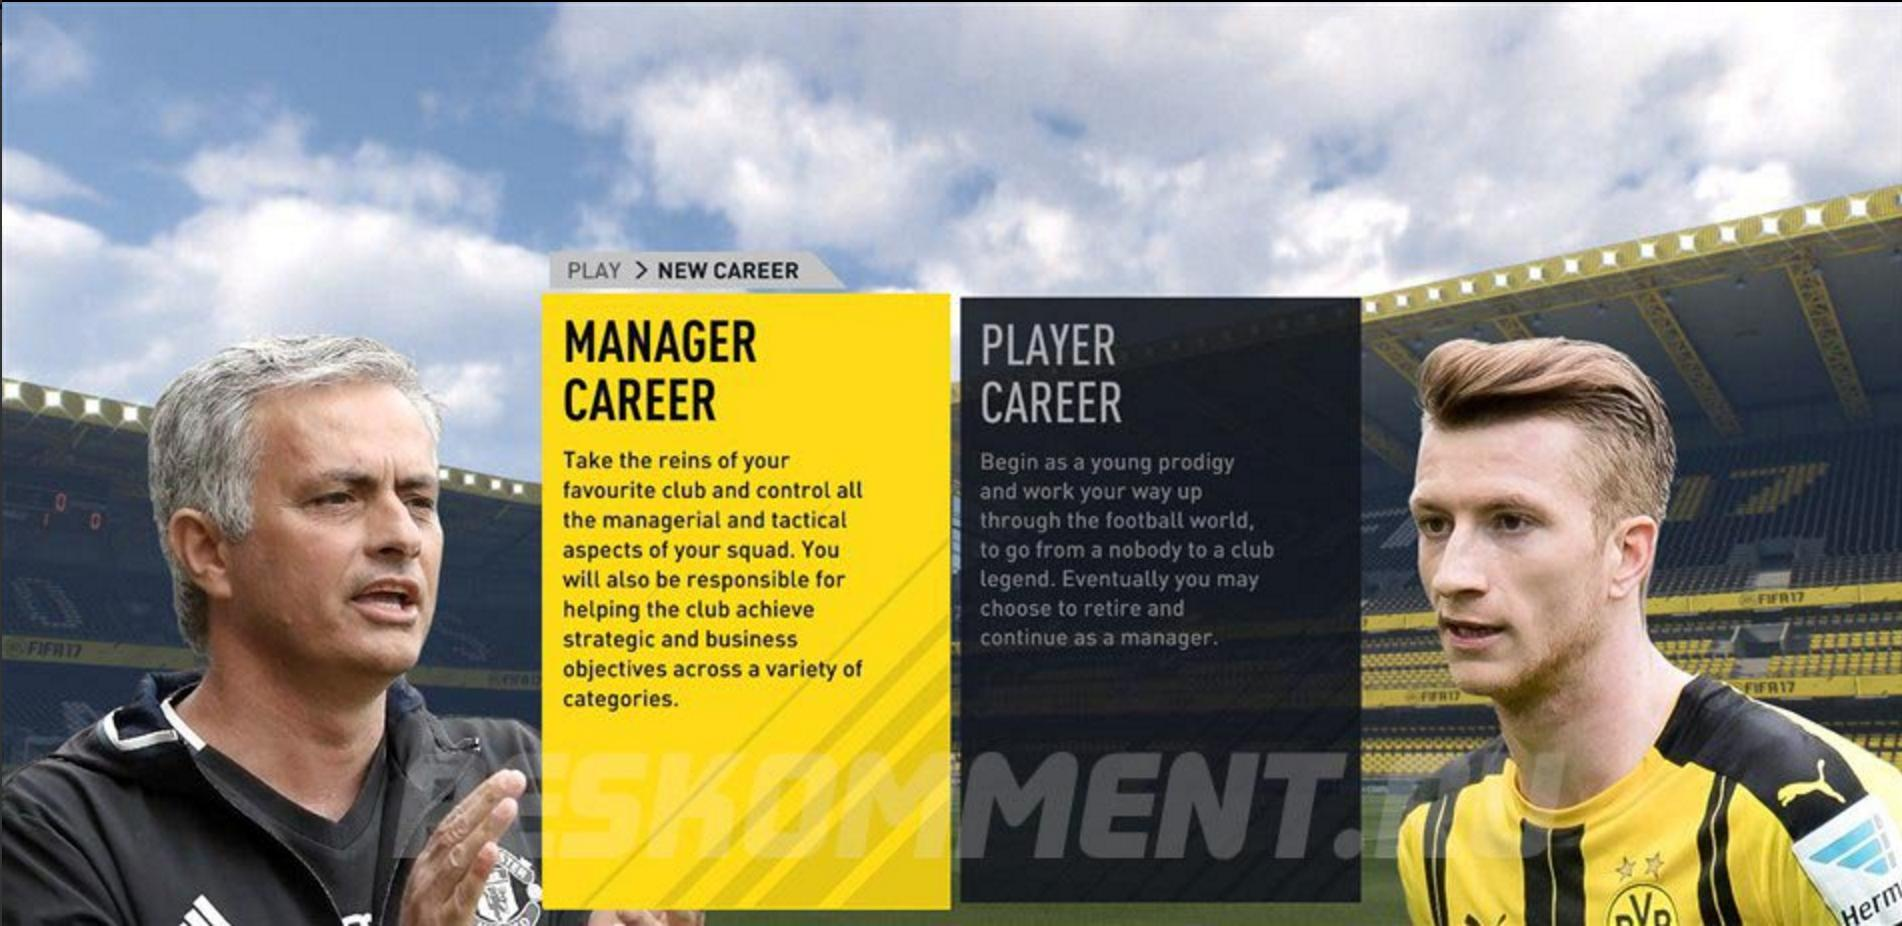 fifa 17 player career mode how to get transferred